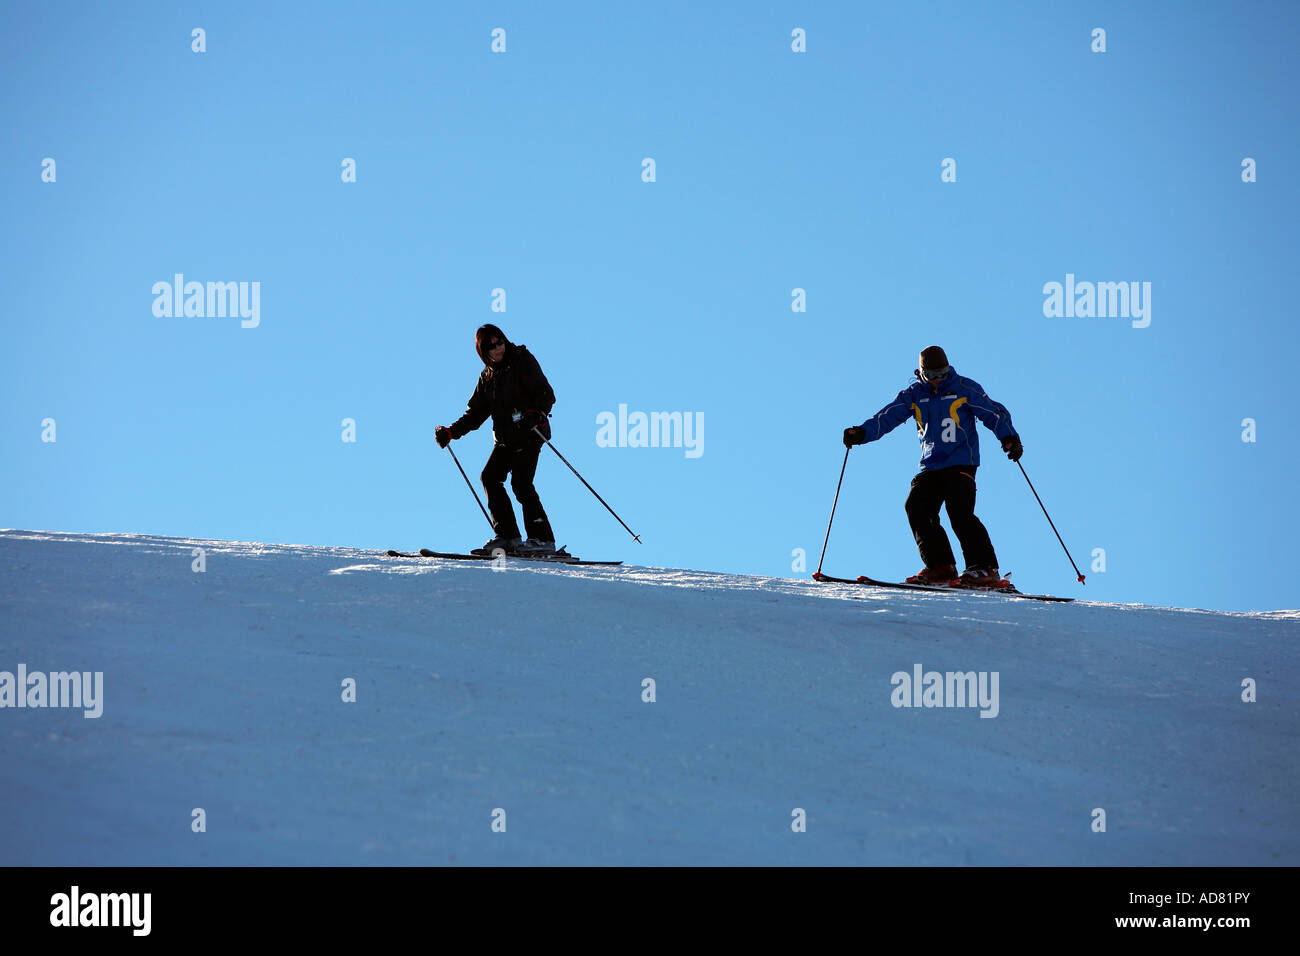 Ski Beginner Stock Photos Amp Ski Beginner Stock Images Alamy